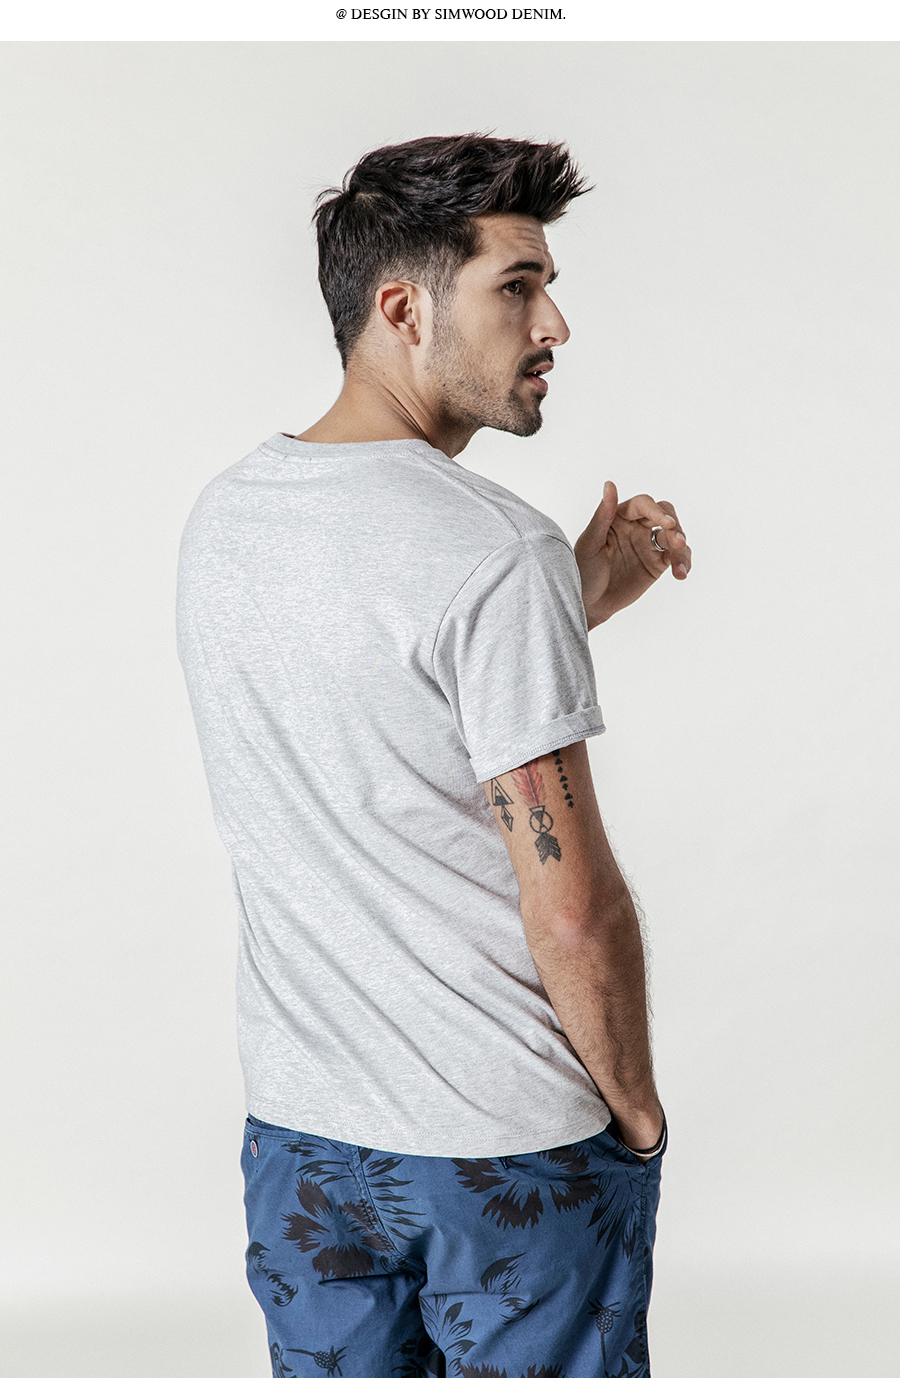 SIMWOOD 19 Summer New T-Shirt Men 100% Cotton Solid Color Casual t shirt Basics O-neck High Quality Plus Size Male Tee 190004 26